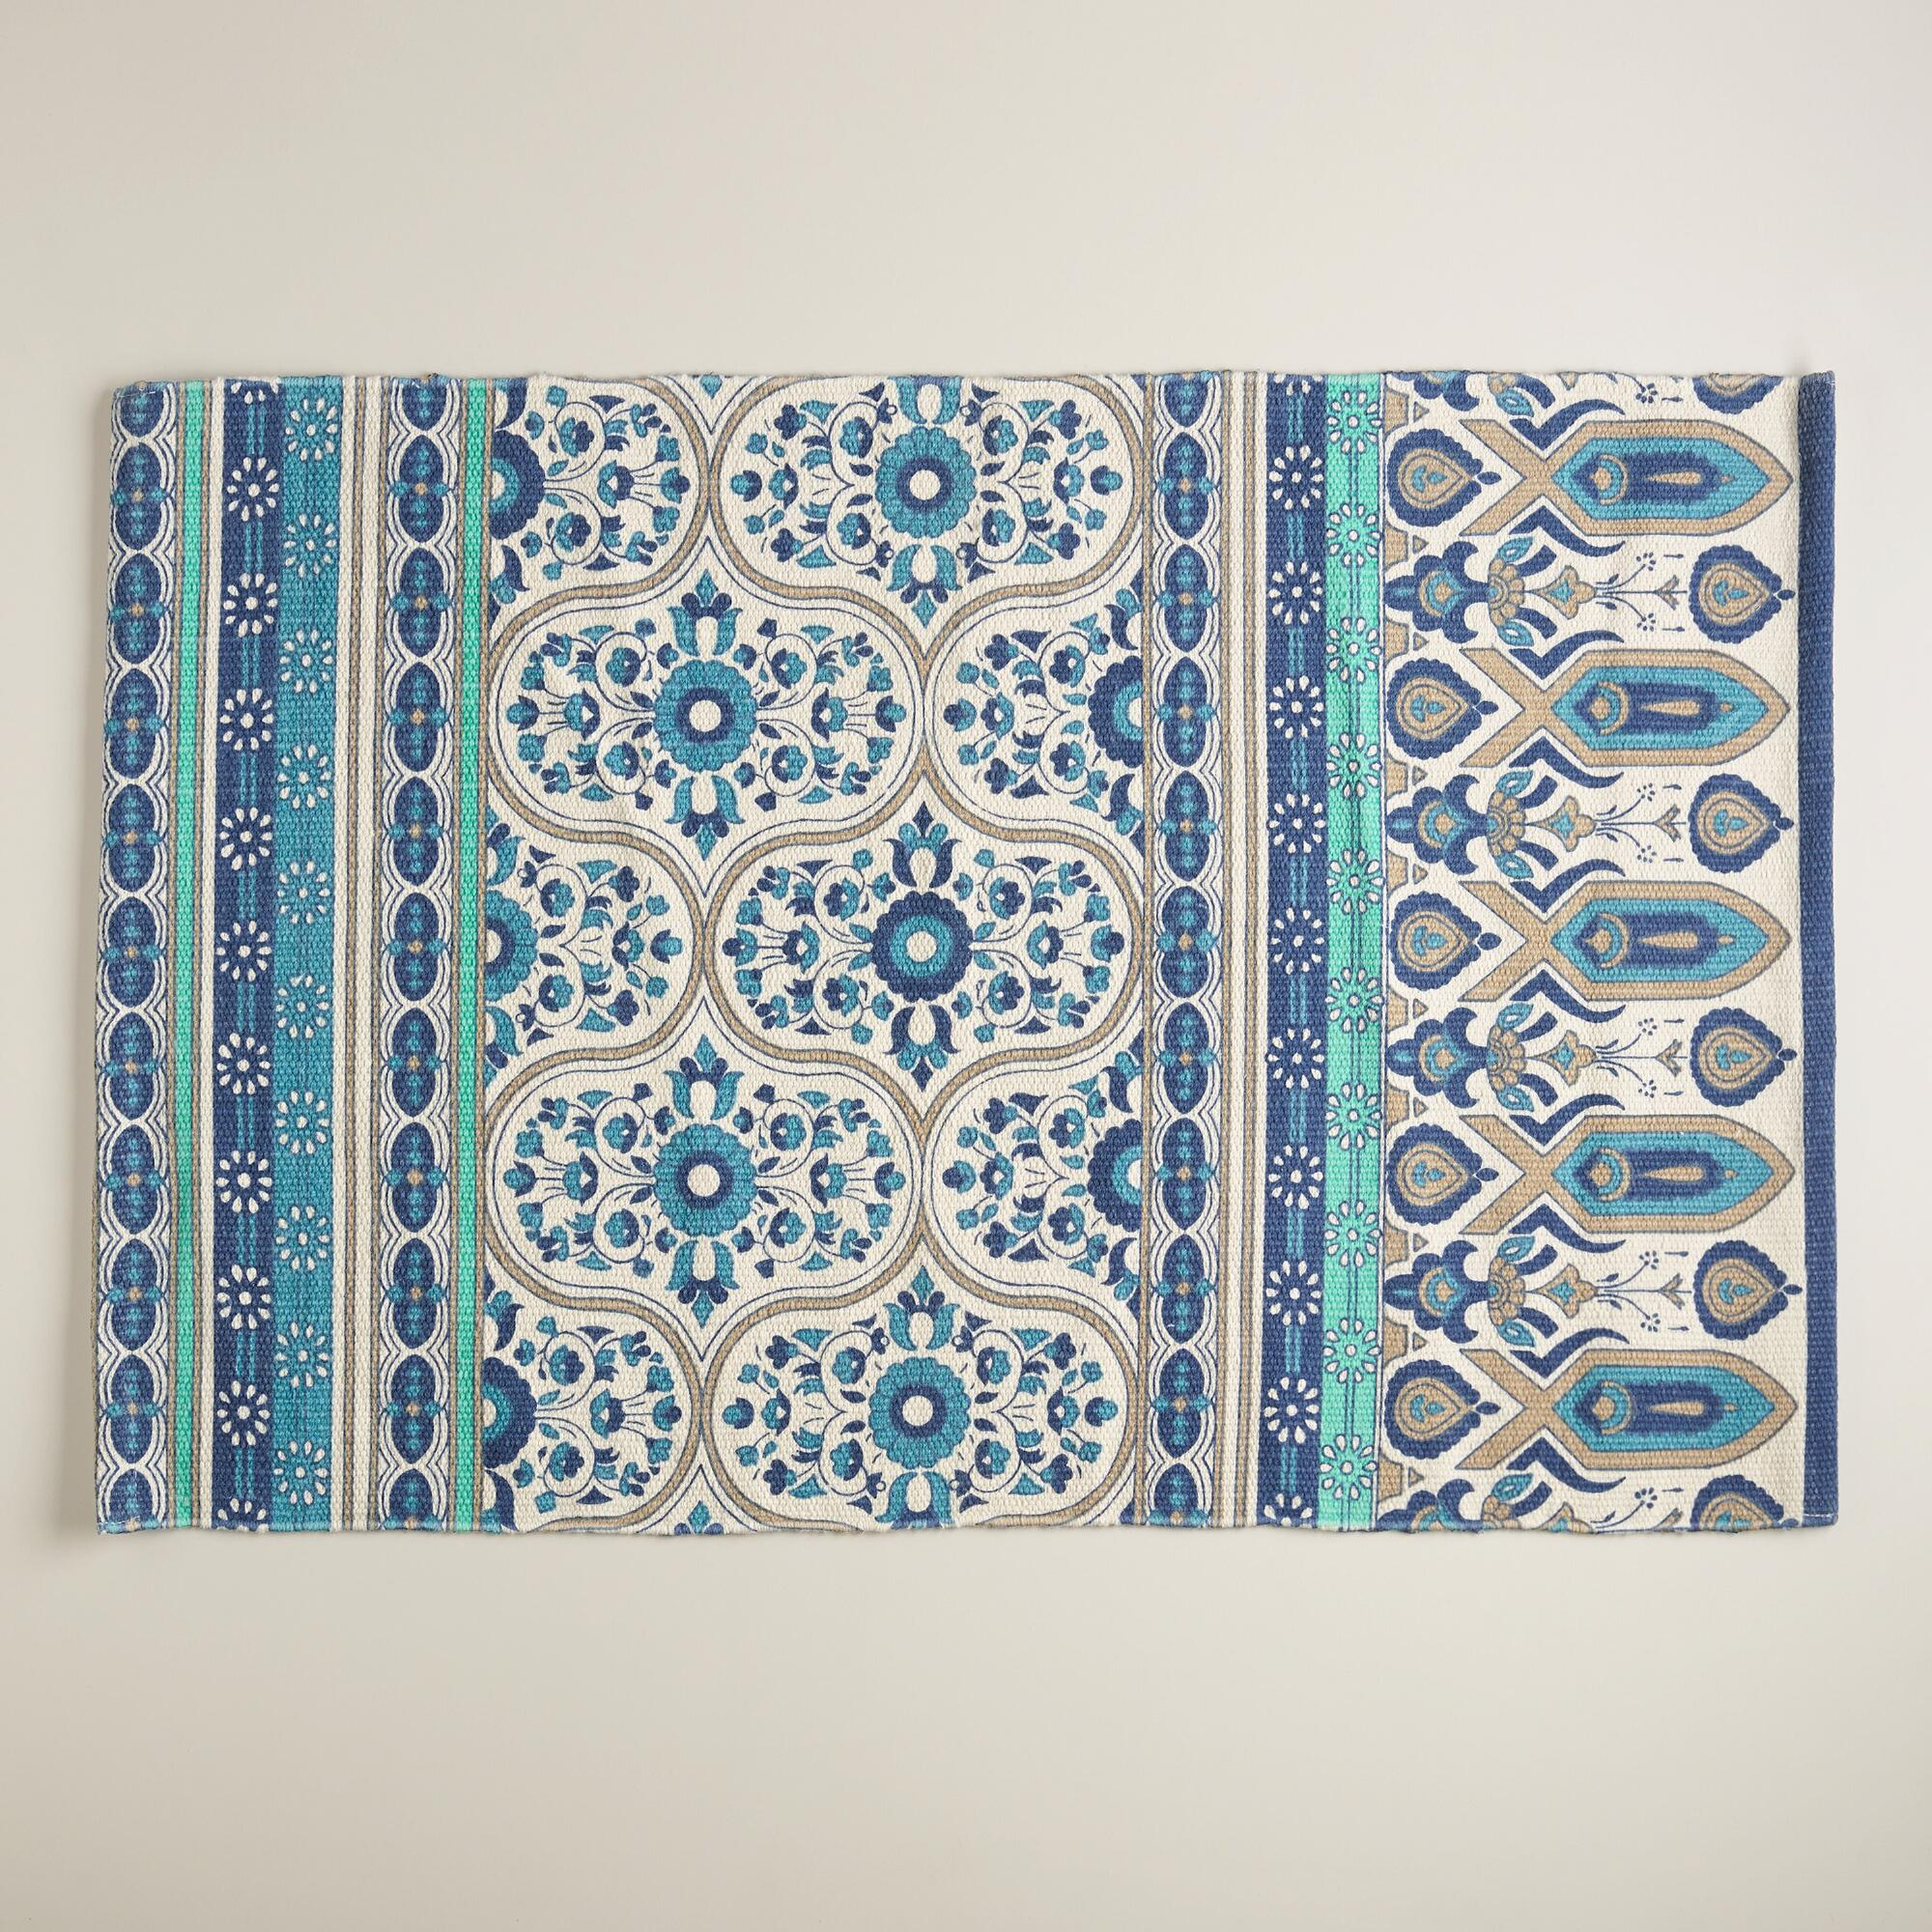 2'x3' Blue Floral Reversible Indoor-Outdoor Rug | World Market - photo#24